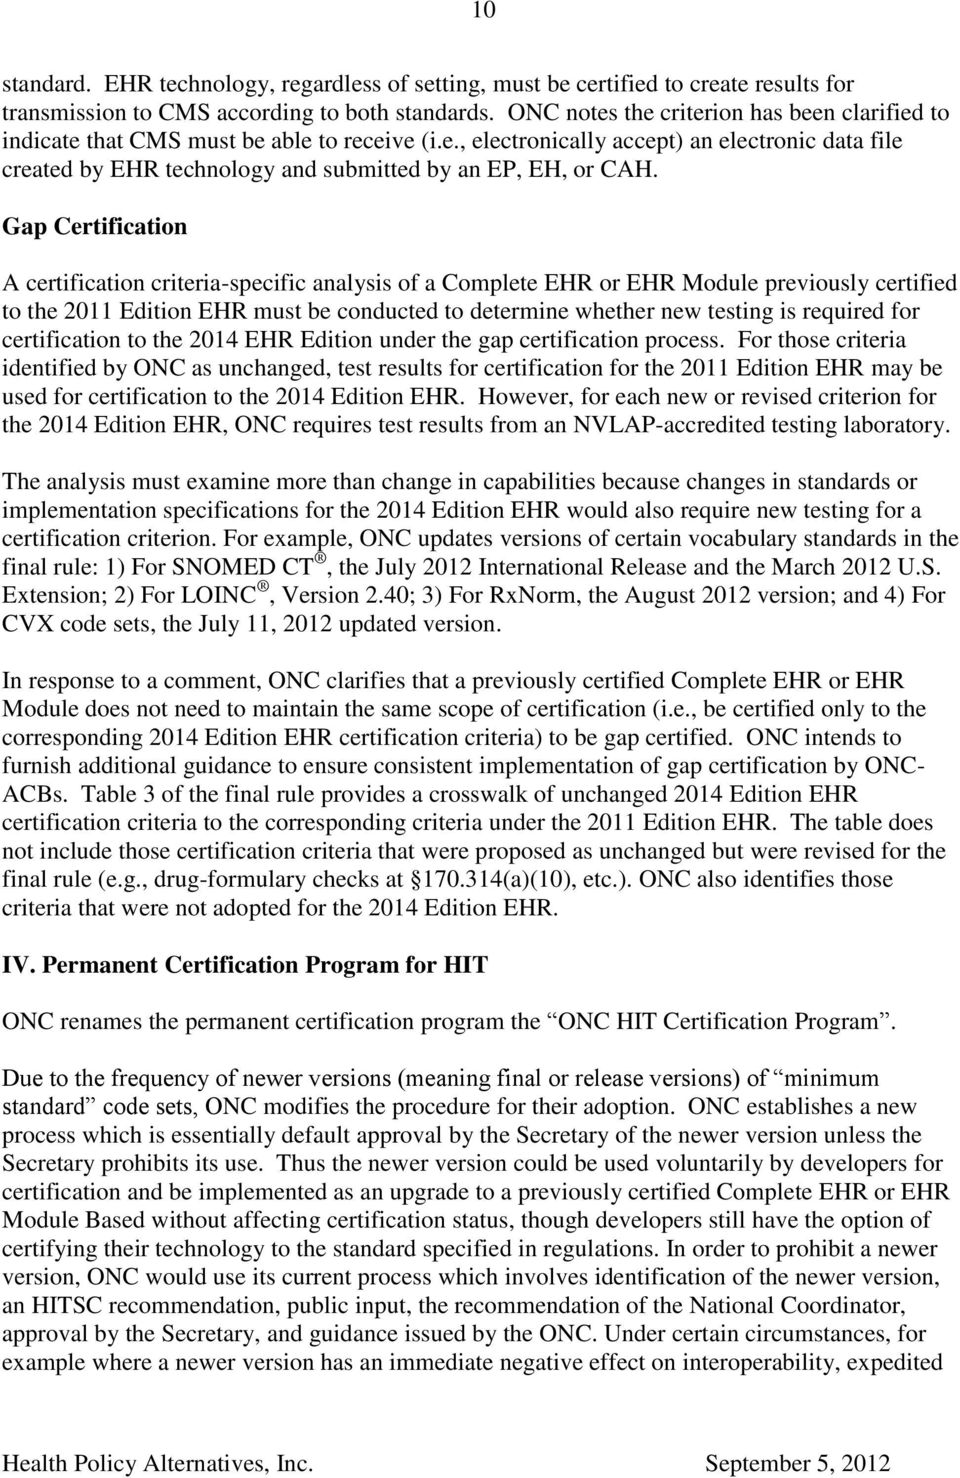 Gap Certification A certification criteria-specific analysis of a Complete EHR or EHR Module previously certified to the 2011 Edition EHR must be conducted to determine whether new testing is